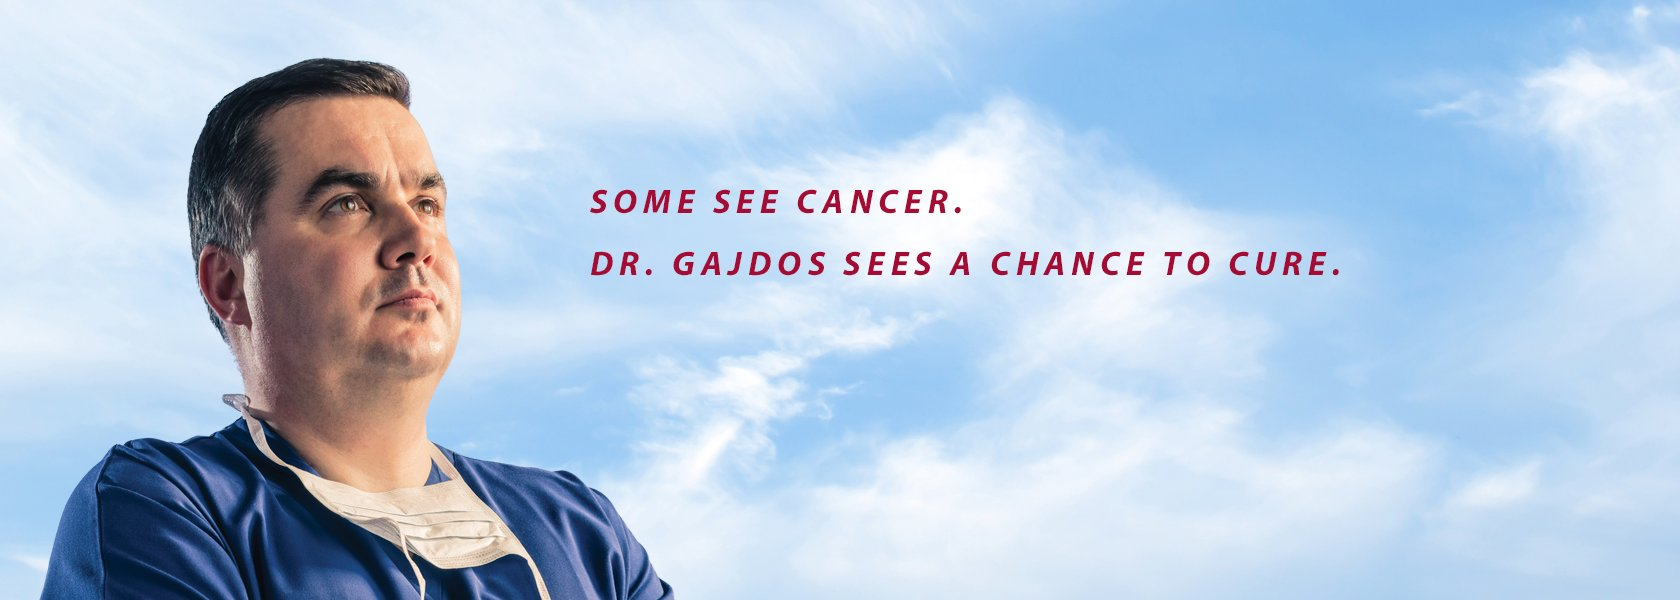 Some see cancer. Dr. Gajdos sees a chance to cure.